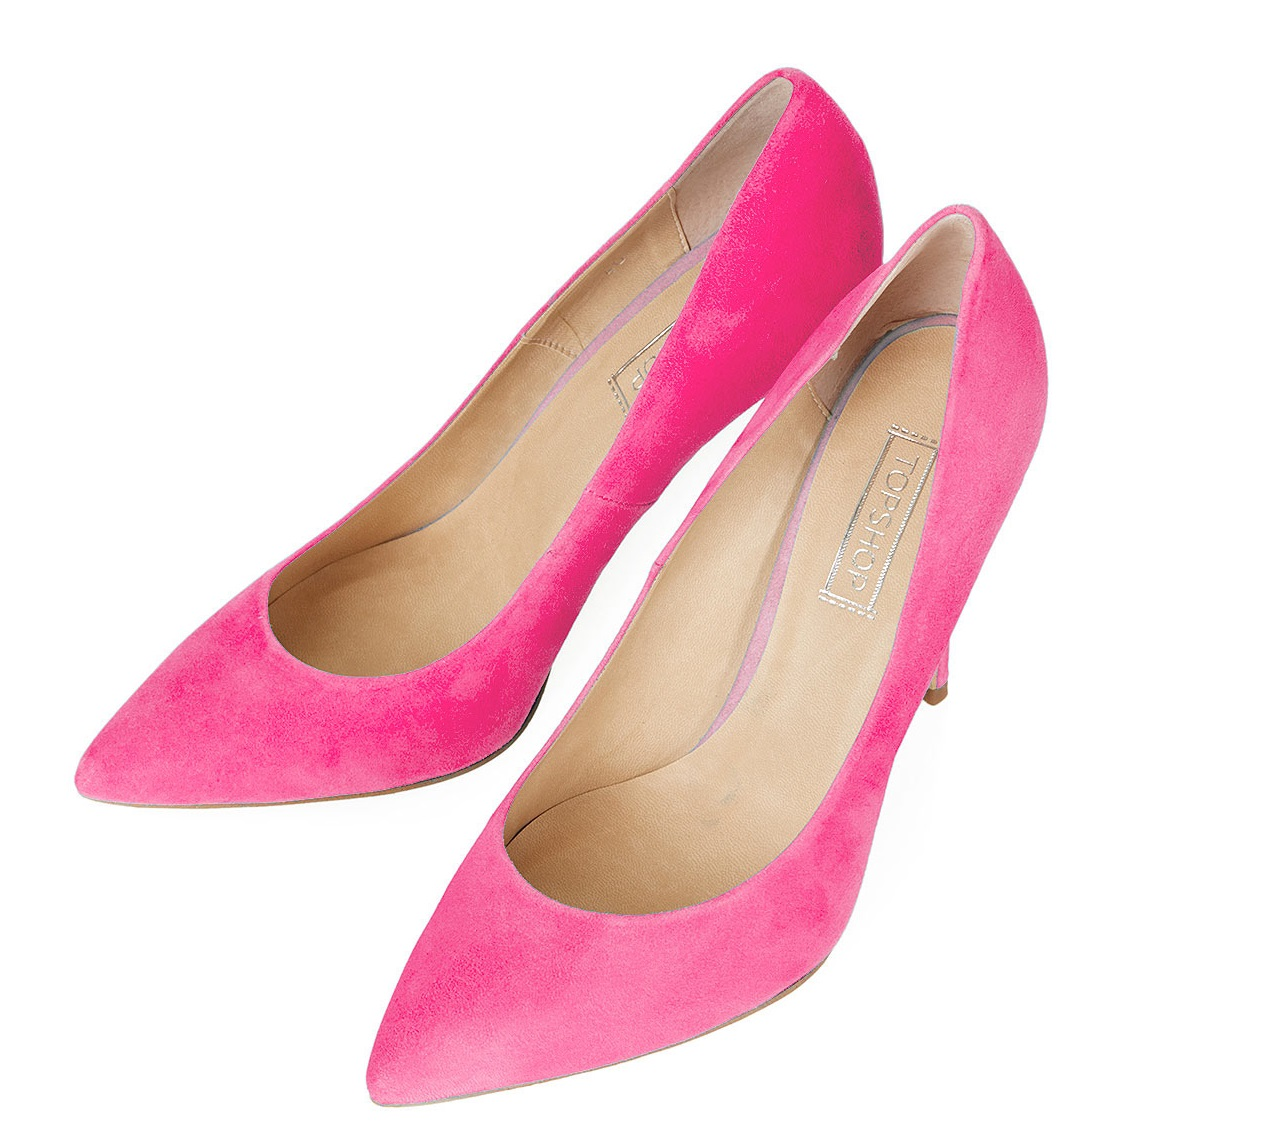 Want to add some sass to that basic black dress or that slimming pair of skinny jeans? Shop Macy's today and see the stunning assortment of Designer Pink Pumps, including Women's Pink Pumps and Junior's Pink Pumps.